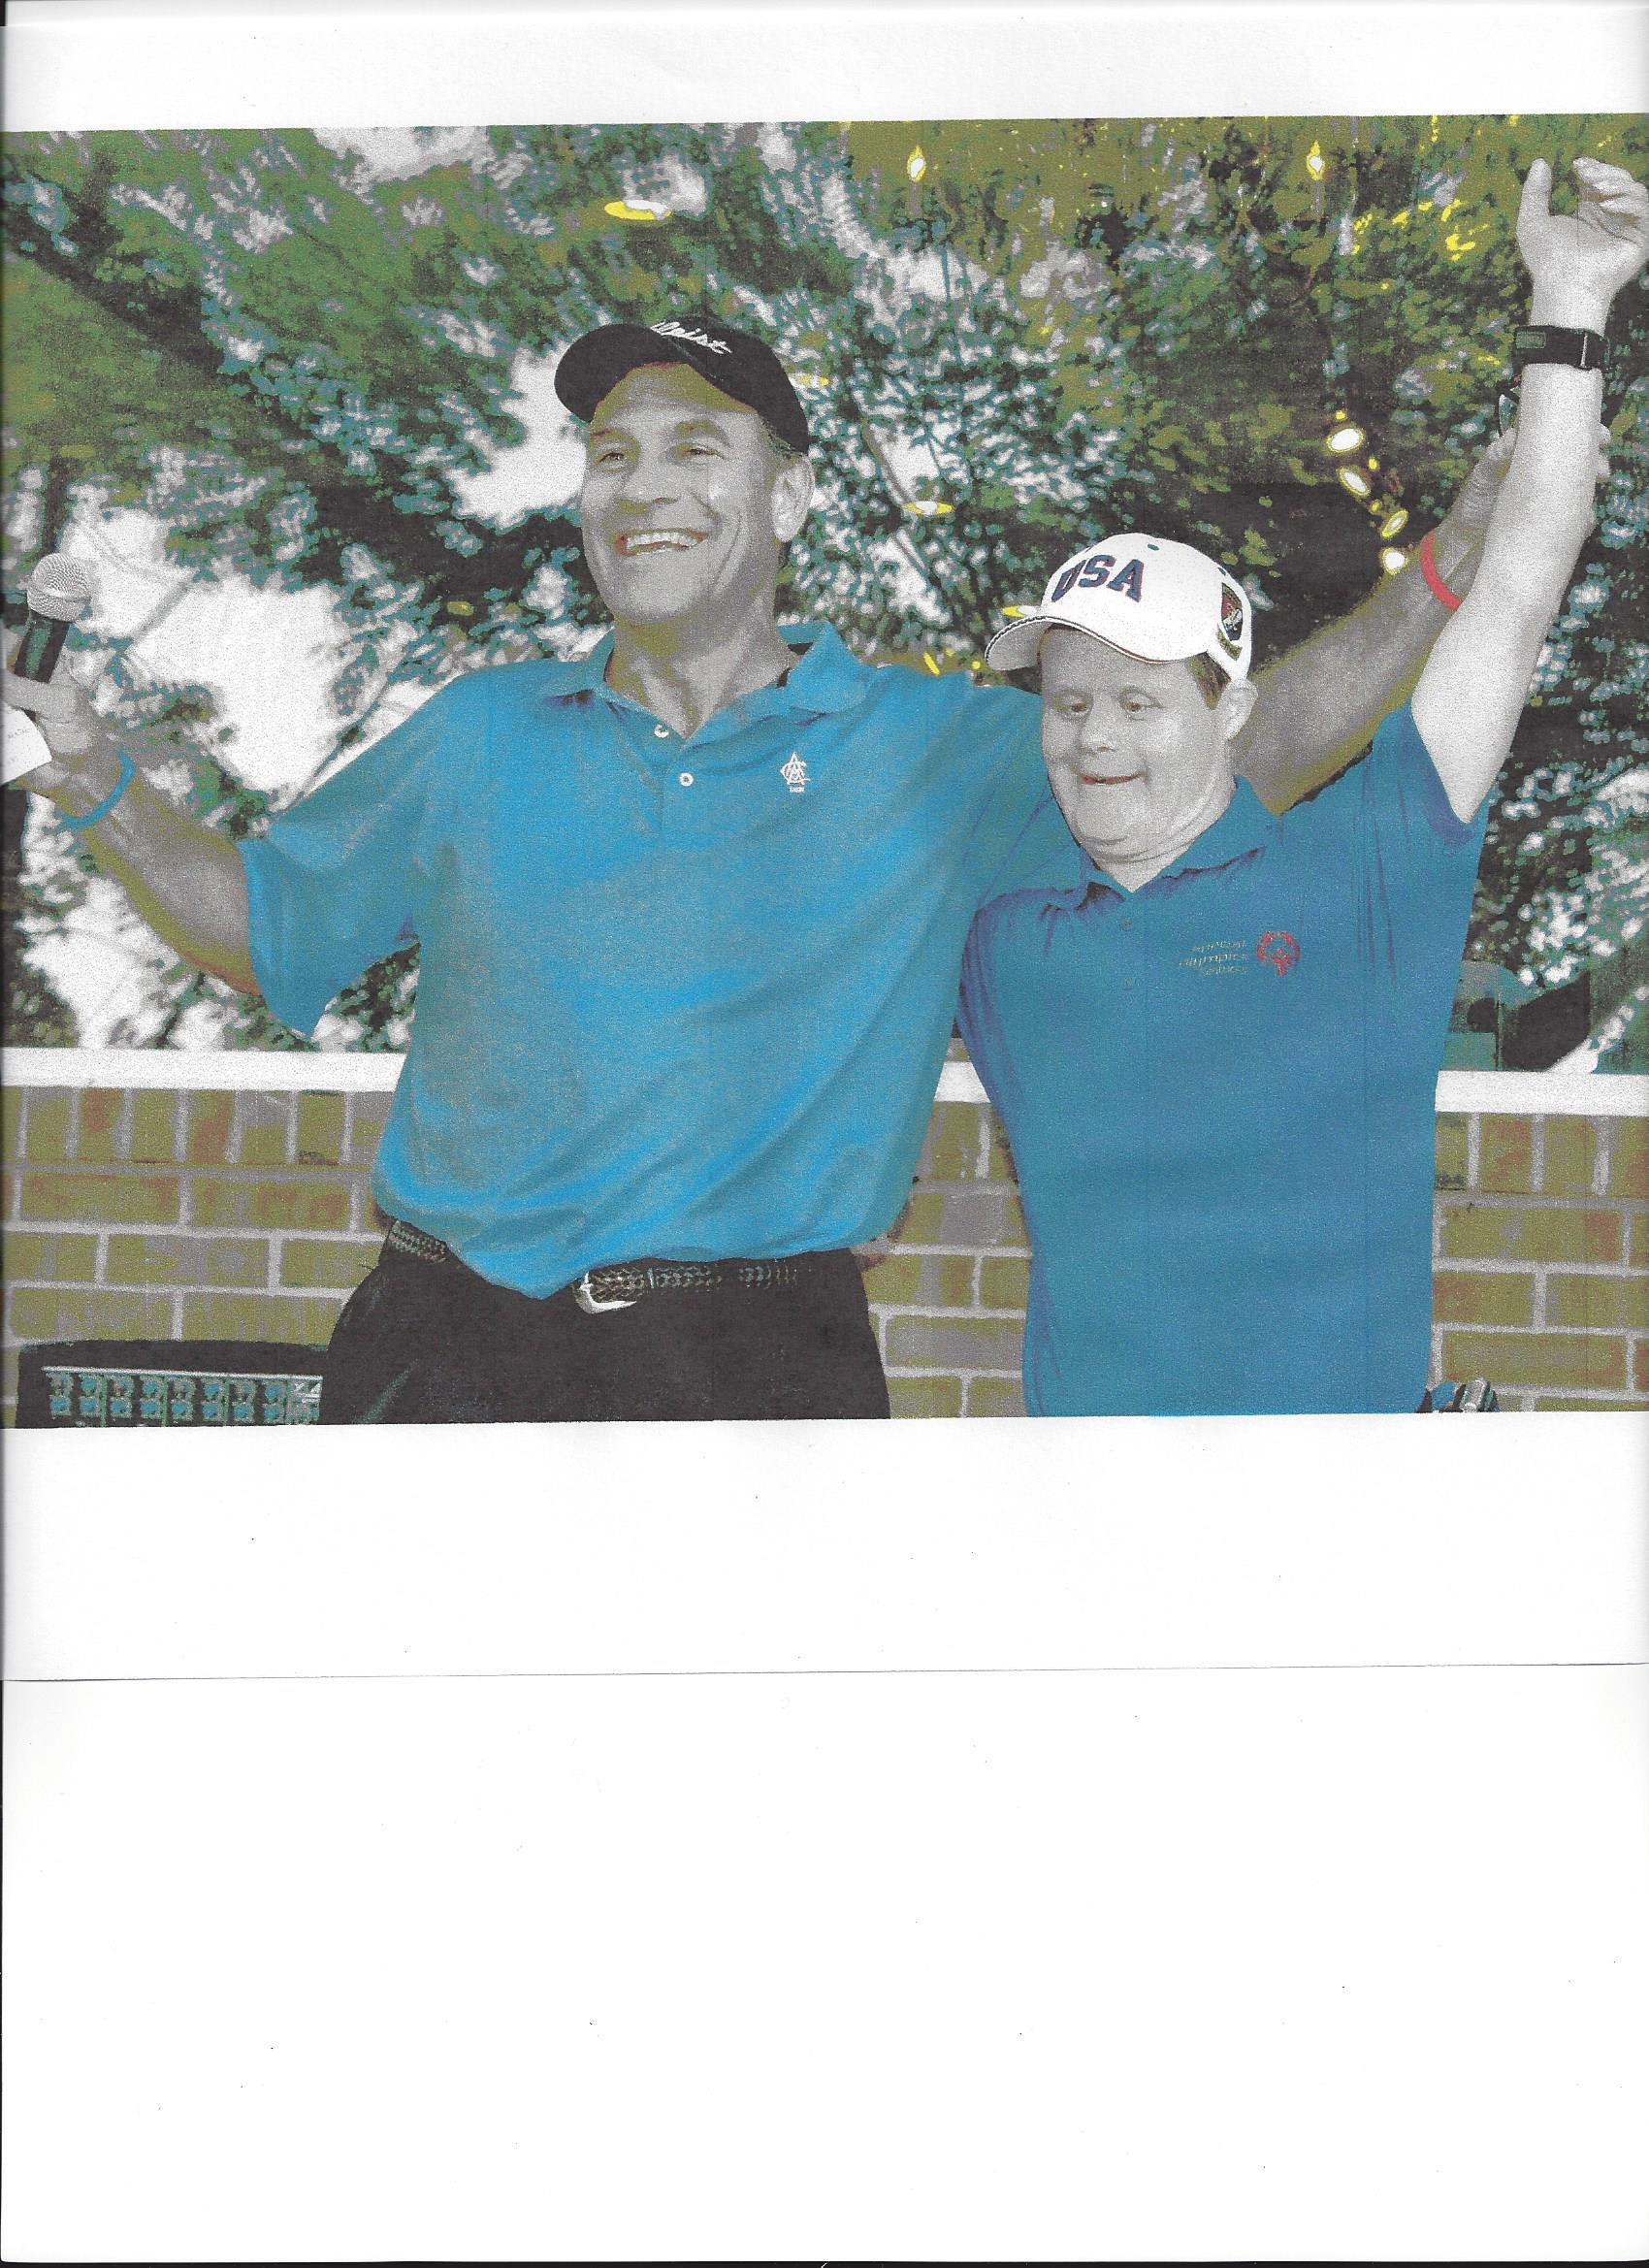 KENTUCKY WIRELESS GOLF-Benefiting the Special Olympics-Presented by POD